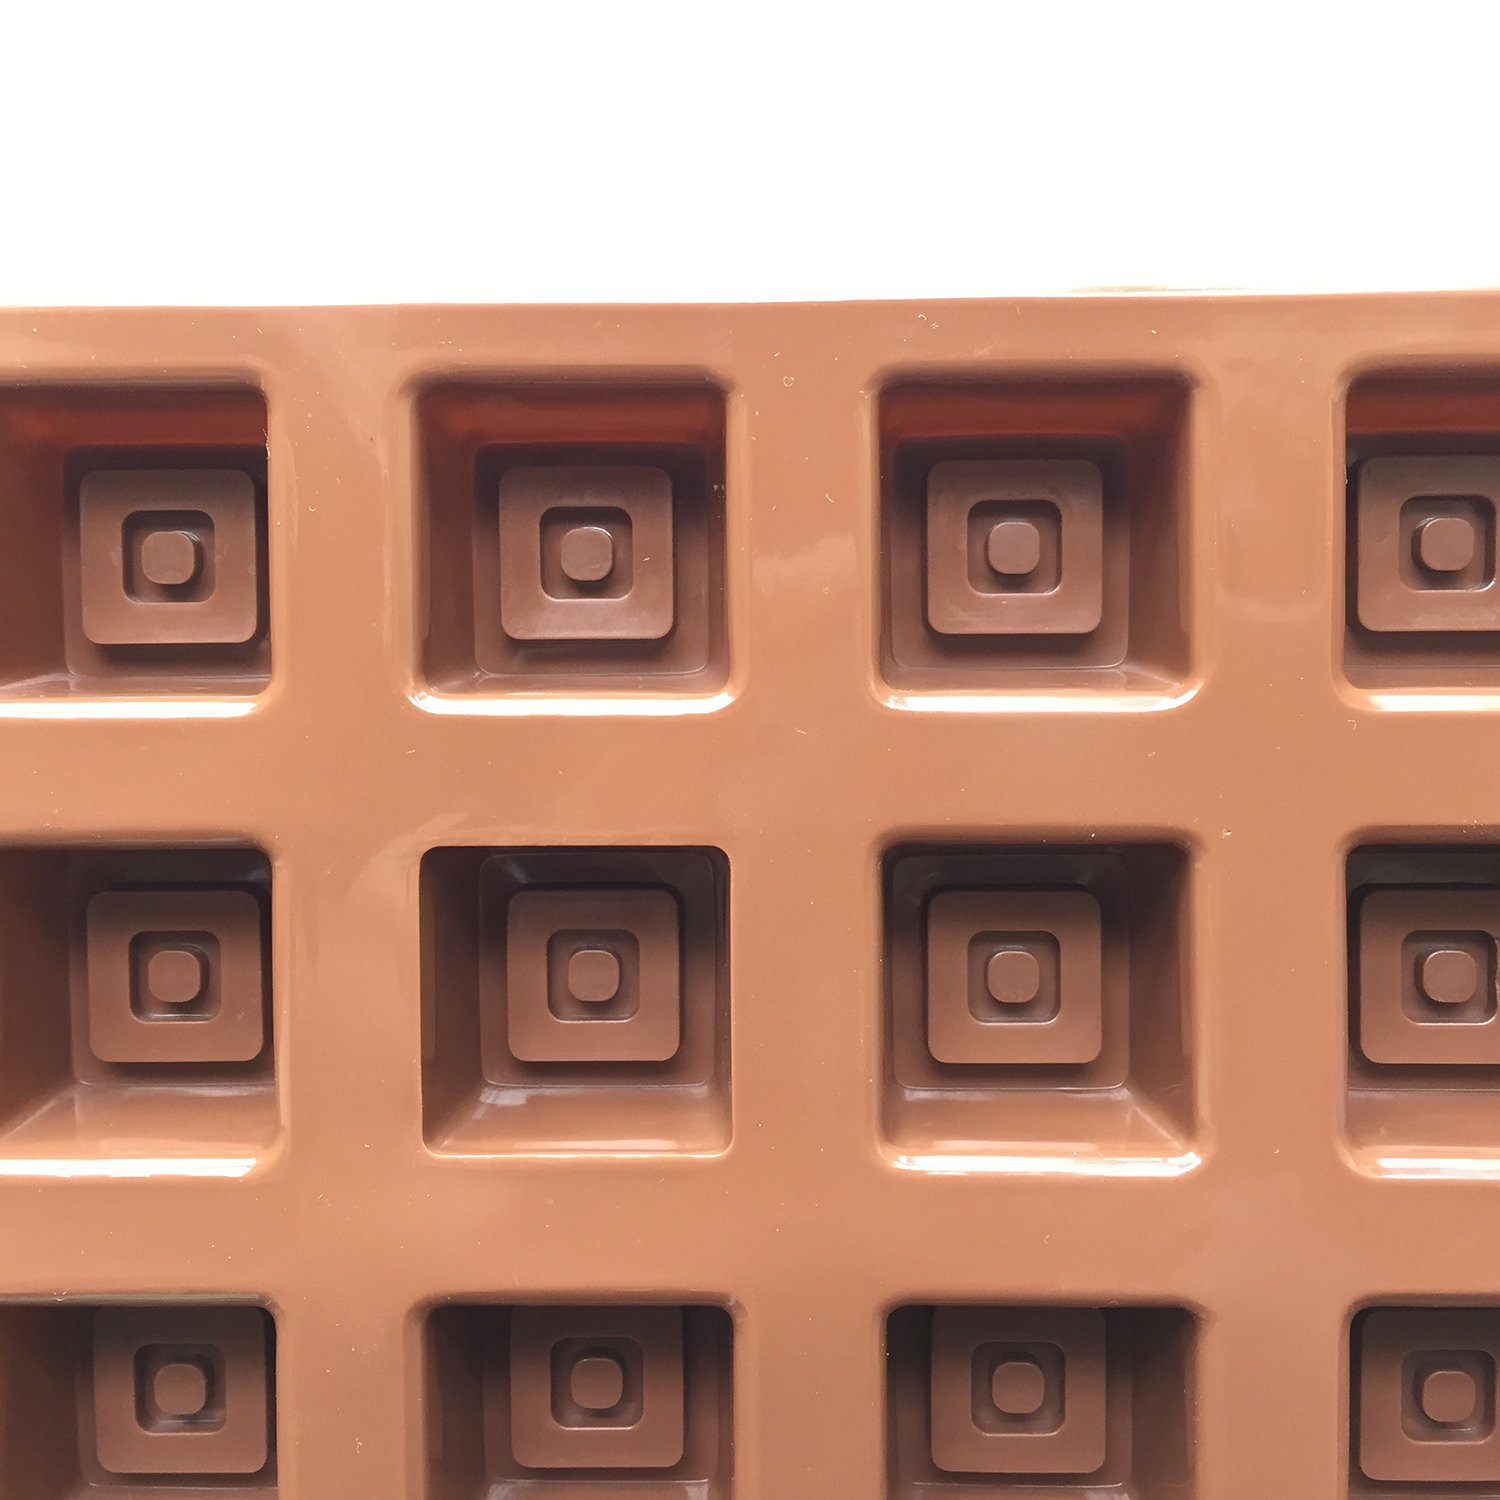 2pcs 15-Cavity Silicone Squares Chocolate Molds for Baking Crafting SOSOHOME0096 Cookies Candy Ice Cube